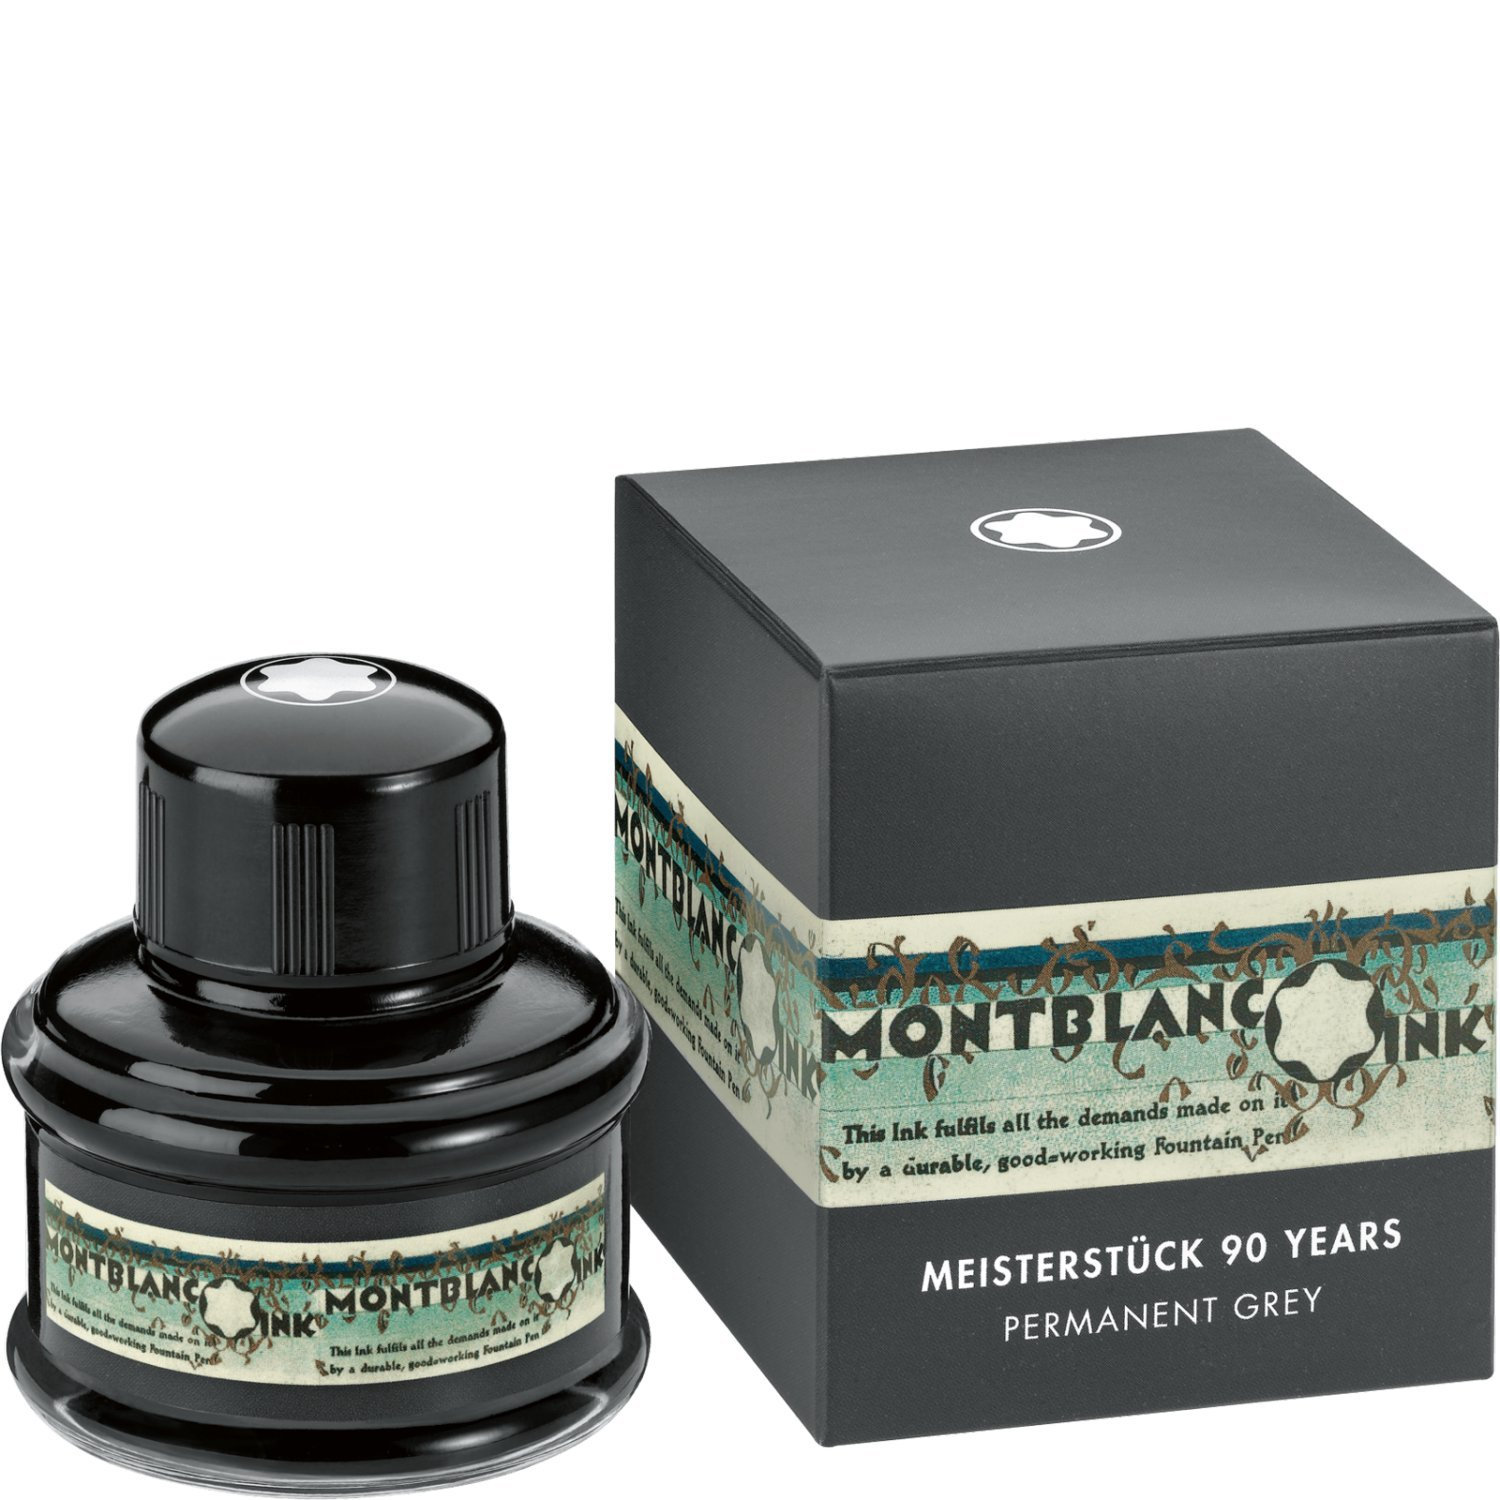 Montblanc Meisterstück 90 Years Permanent Grey Ink Bottle - 35ml by MONTBLANC (Image #1)